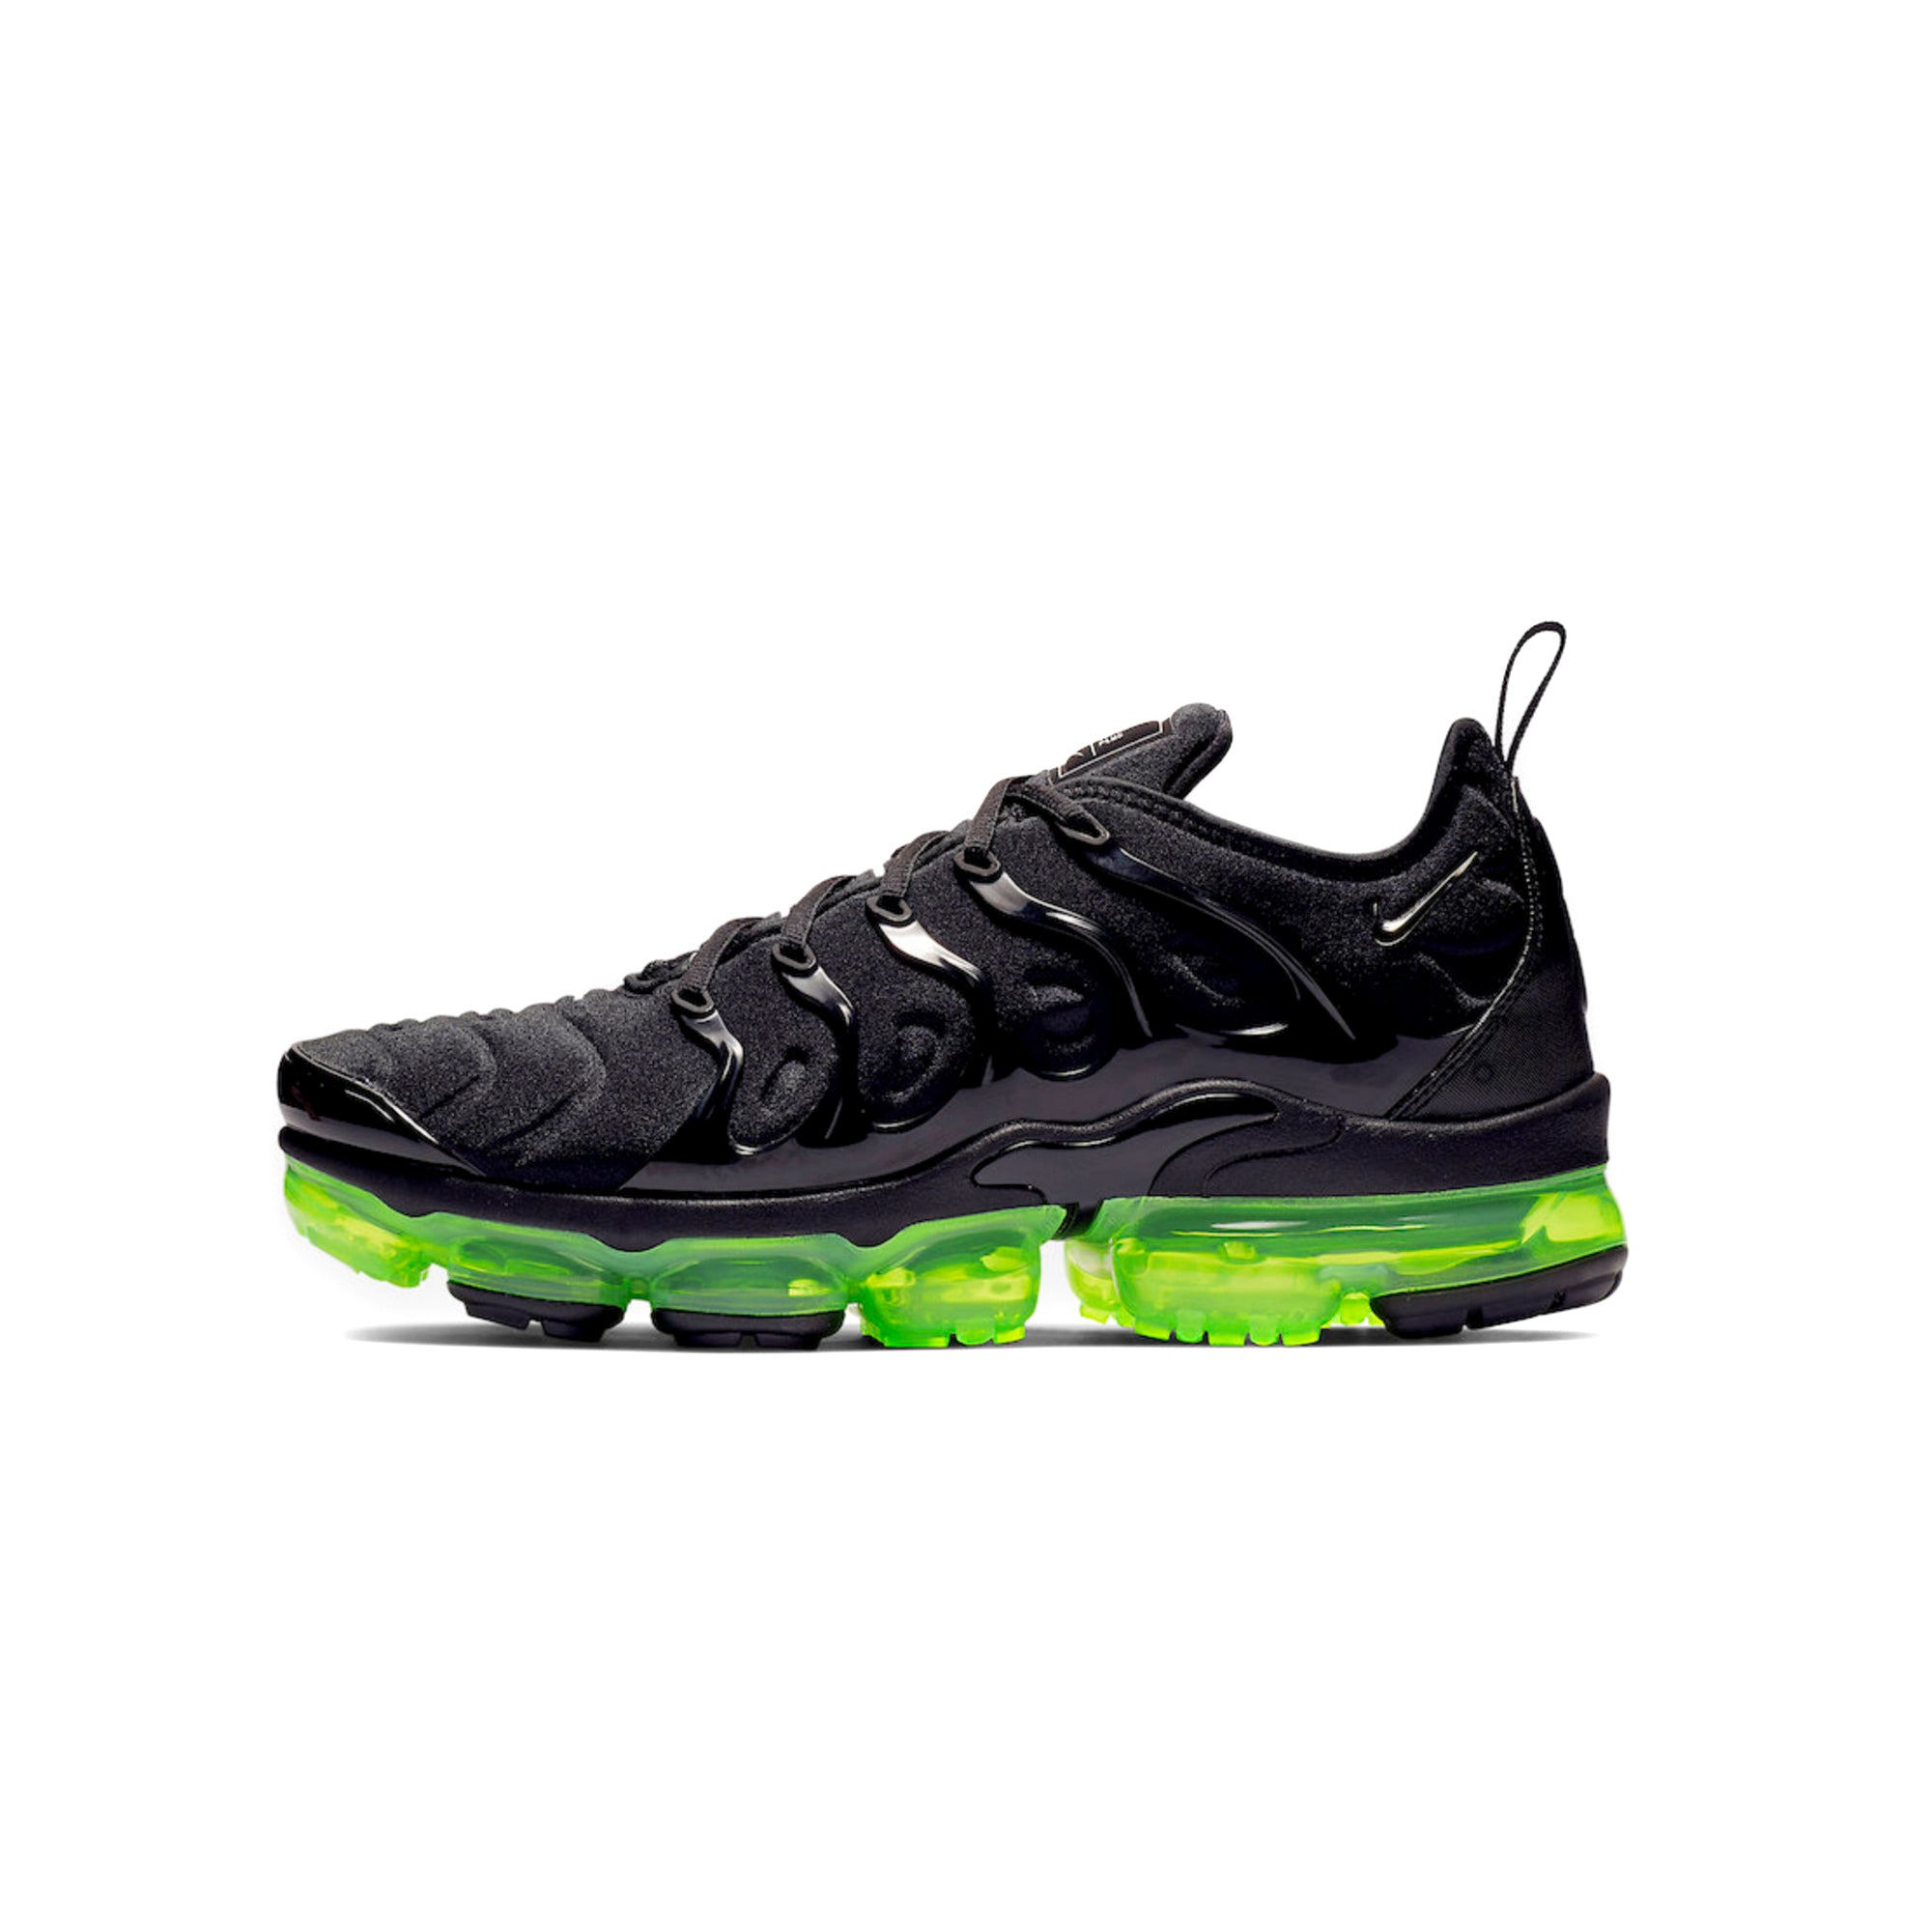 72d7d48024a9f Nike Air Vapormax Plus  924453-015